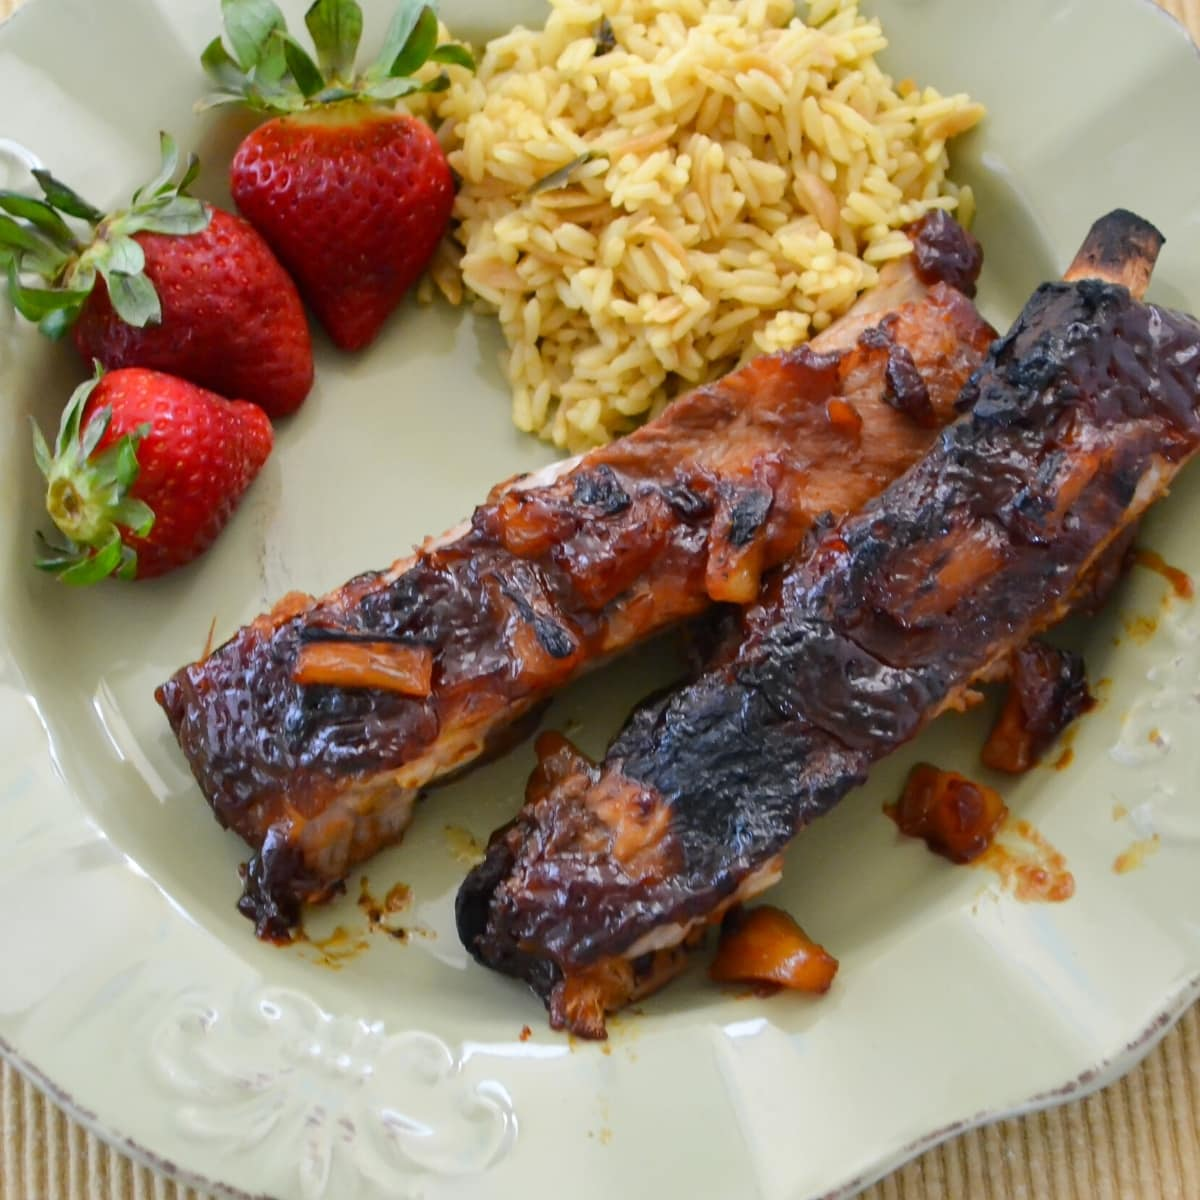 Hawaiian style BBQ Pork Ribs served on a green plate with fresh strawberries and yellow rice.